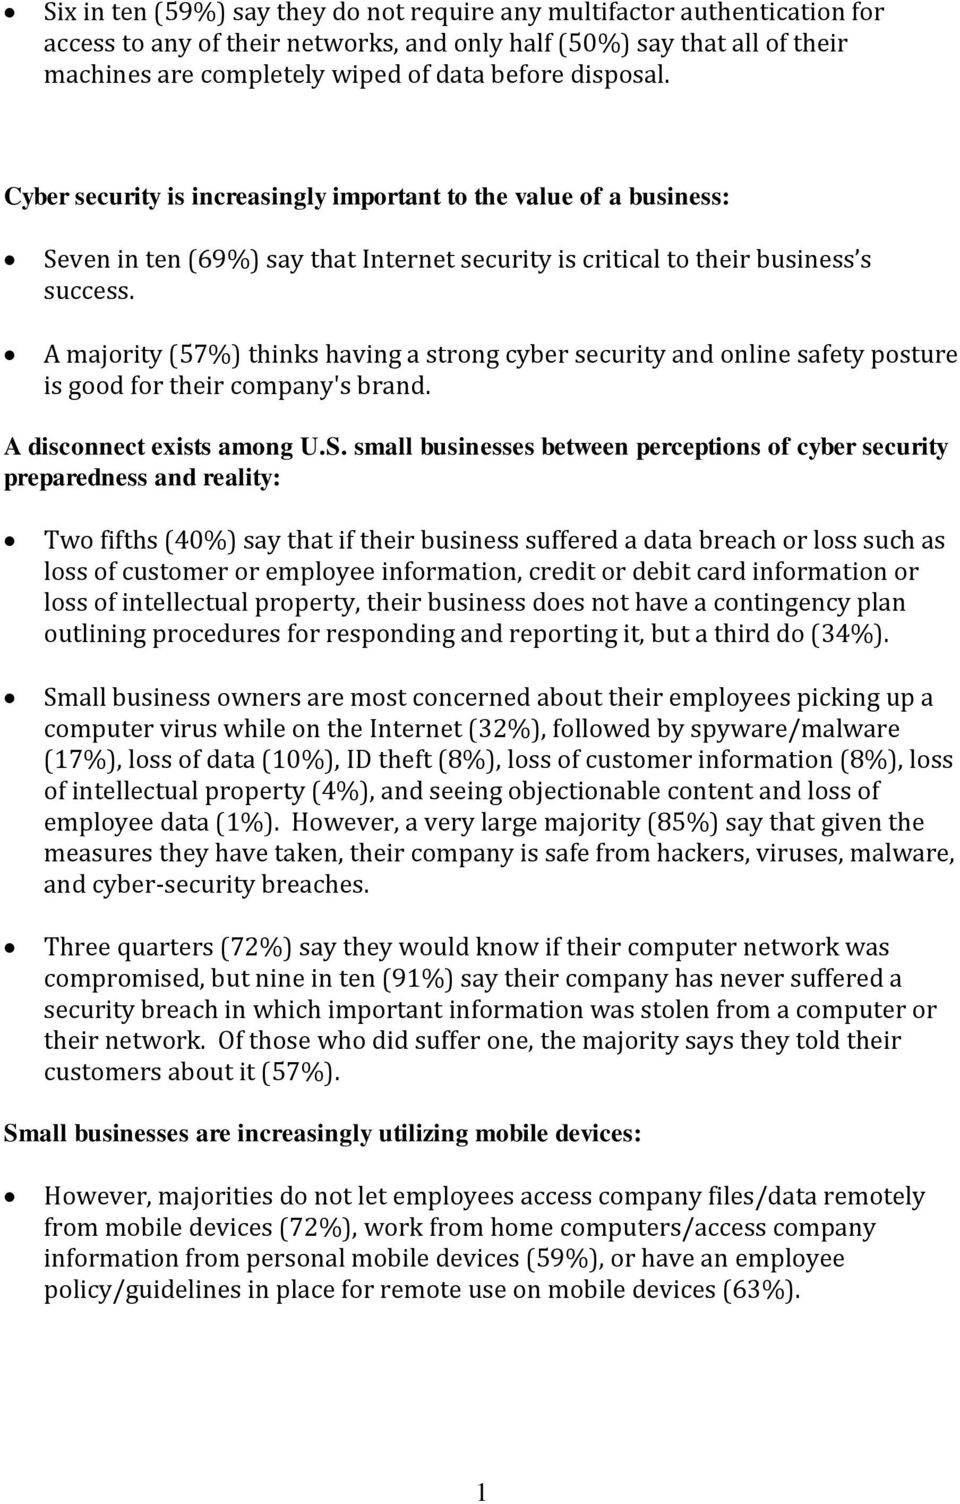 A majority (57%) thinks having a strong cyber security and online safety posture is good for their company's brand. A disconnect exists among U.S.